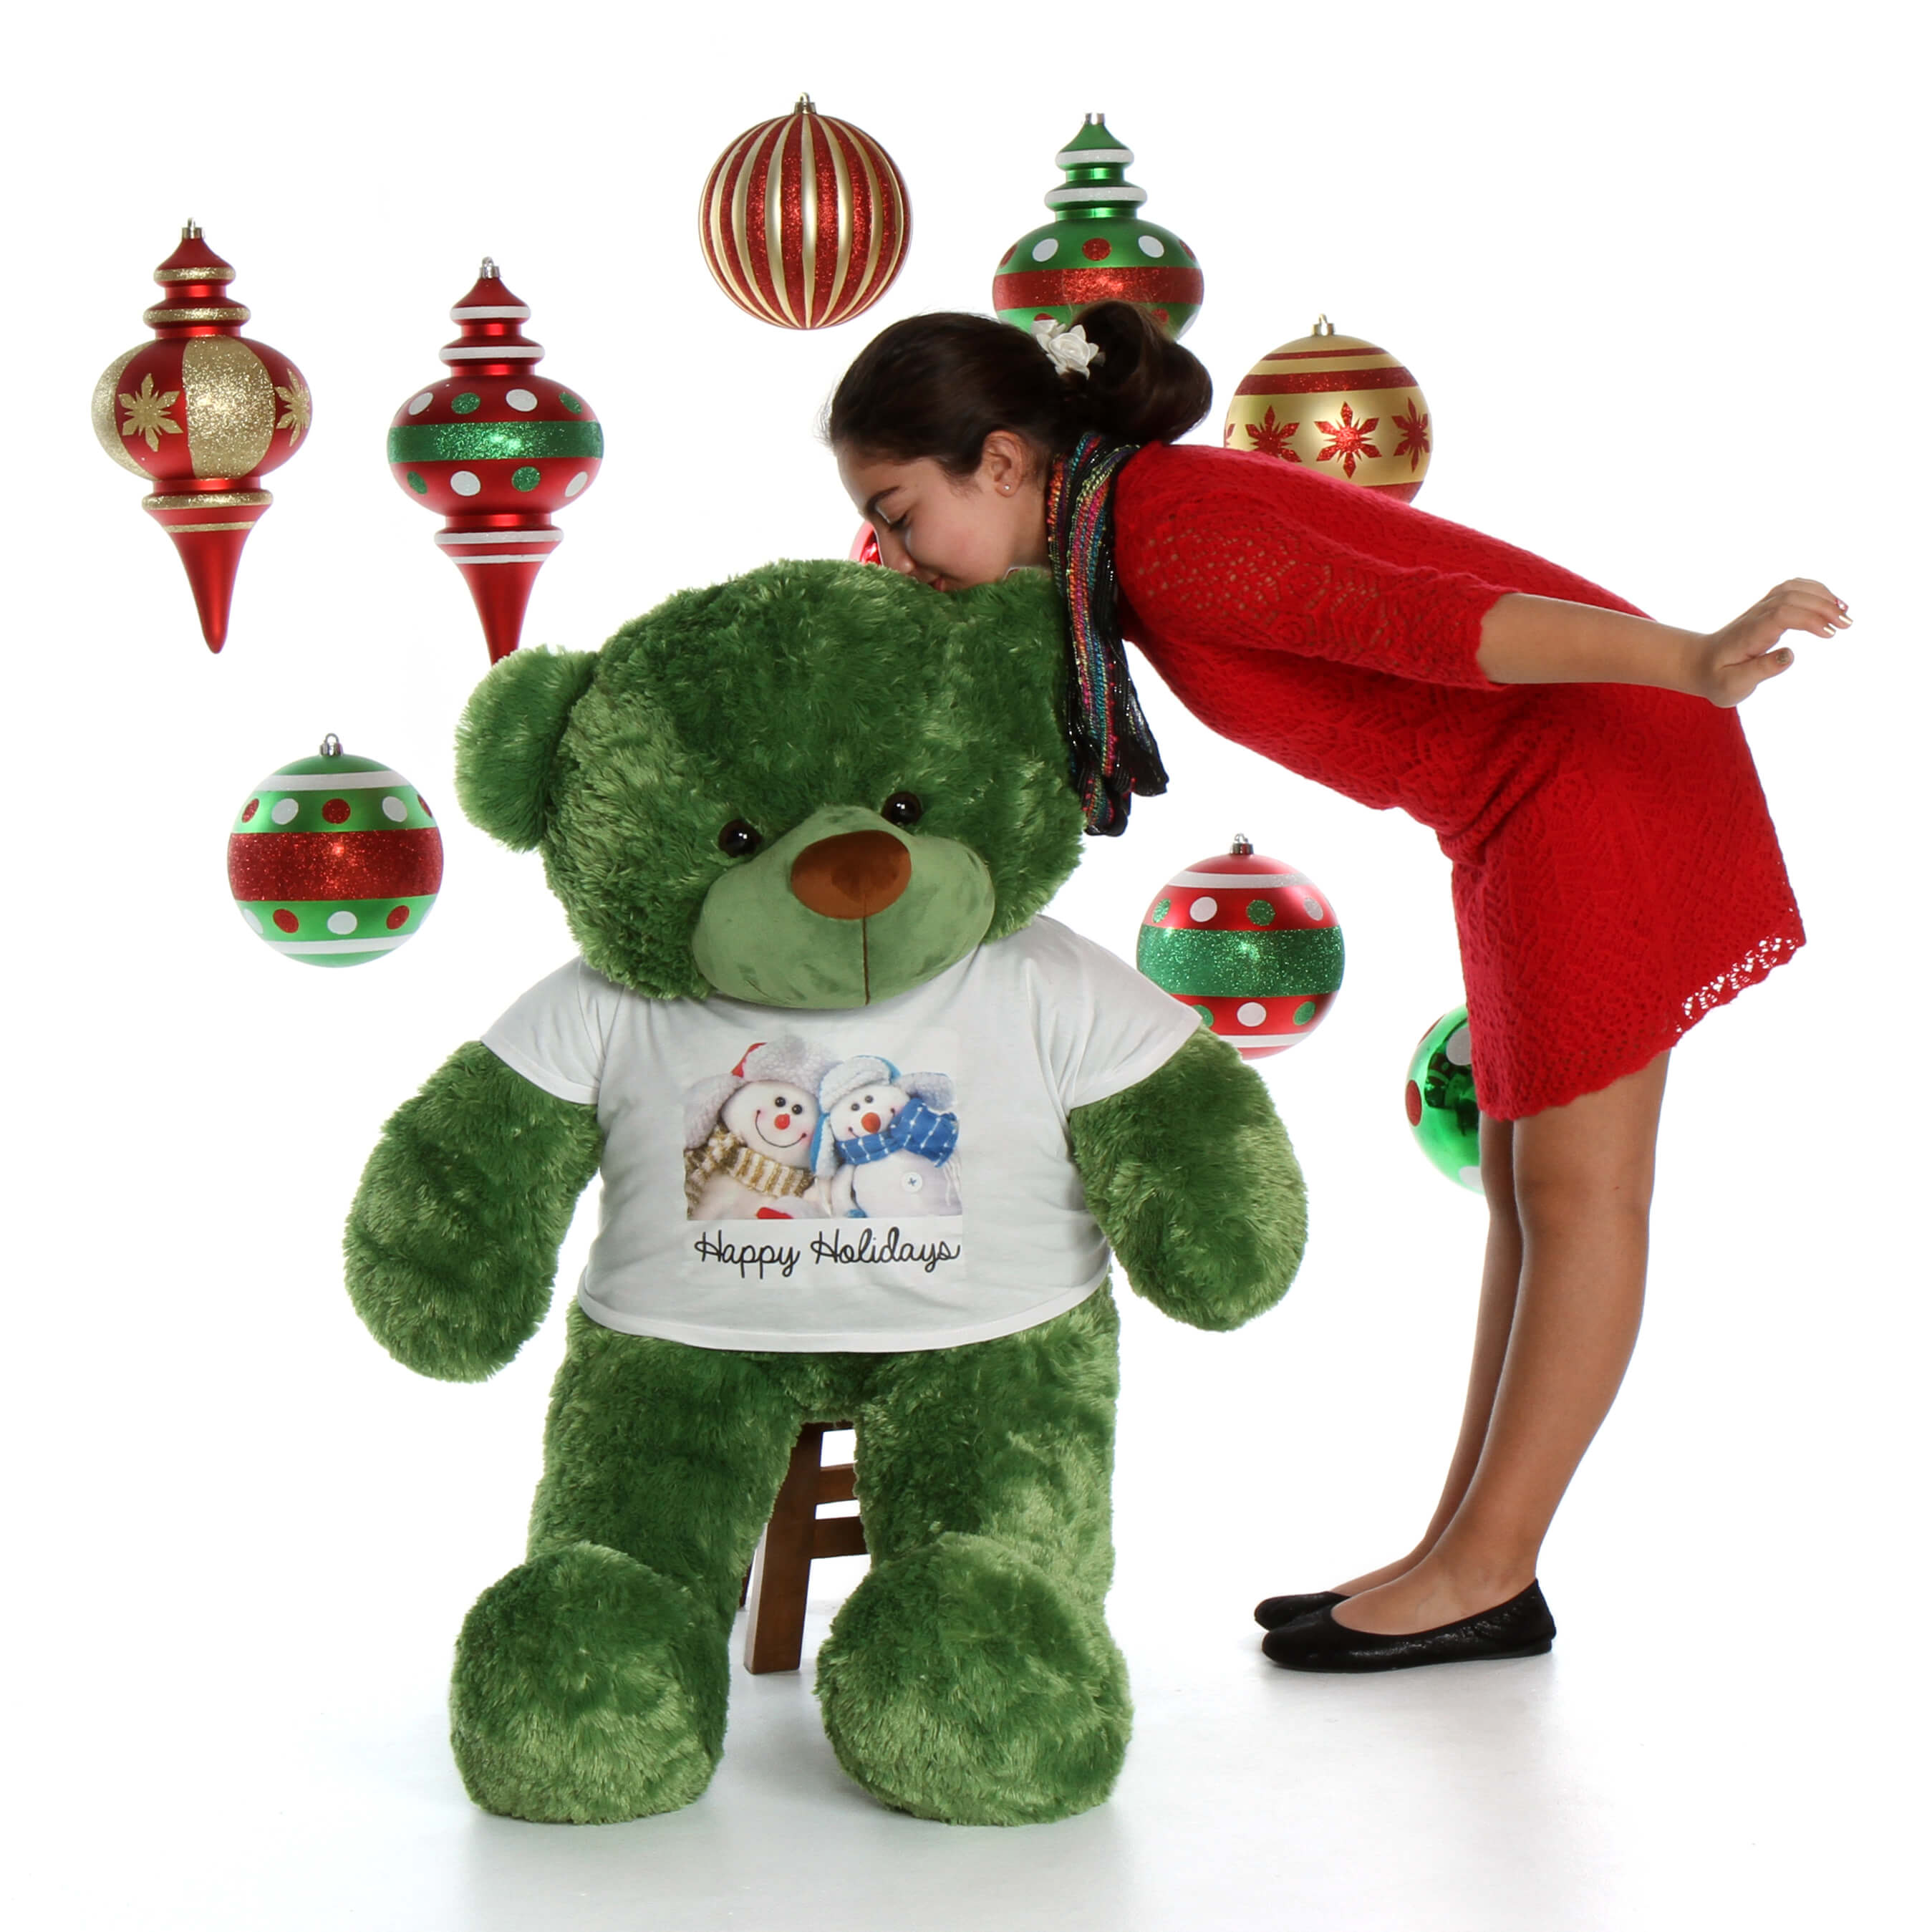 48in-lucky-cuddles-green-giant-teddy-bear-snowman-shirt-kisses1.jpg